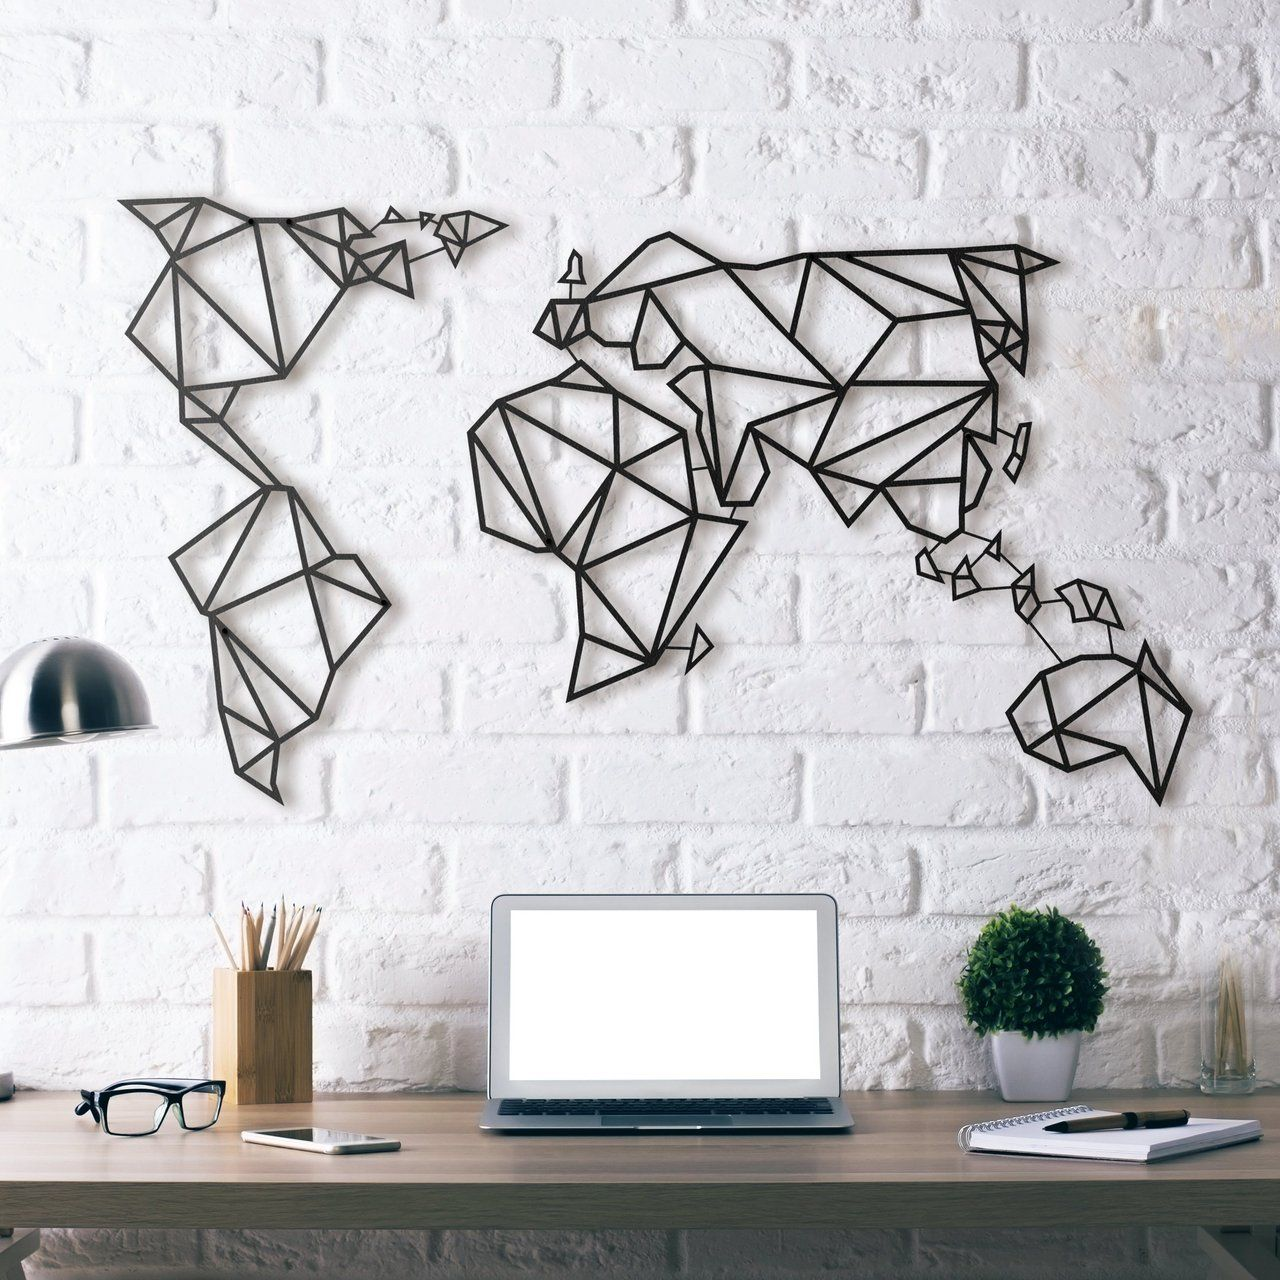 World map wall 4k pictures 4k pictures full hq wallpaper map wall mural walls need love world map wall decal urban outfitters slide view walls need love world map wall decal world map wall stickers colourful gumiabroncs Image collections